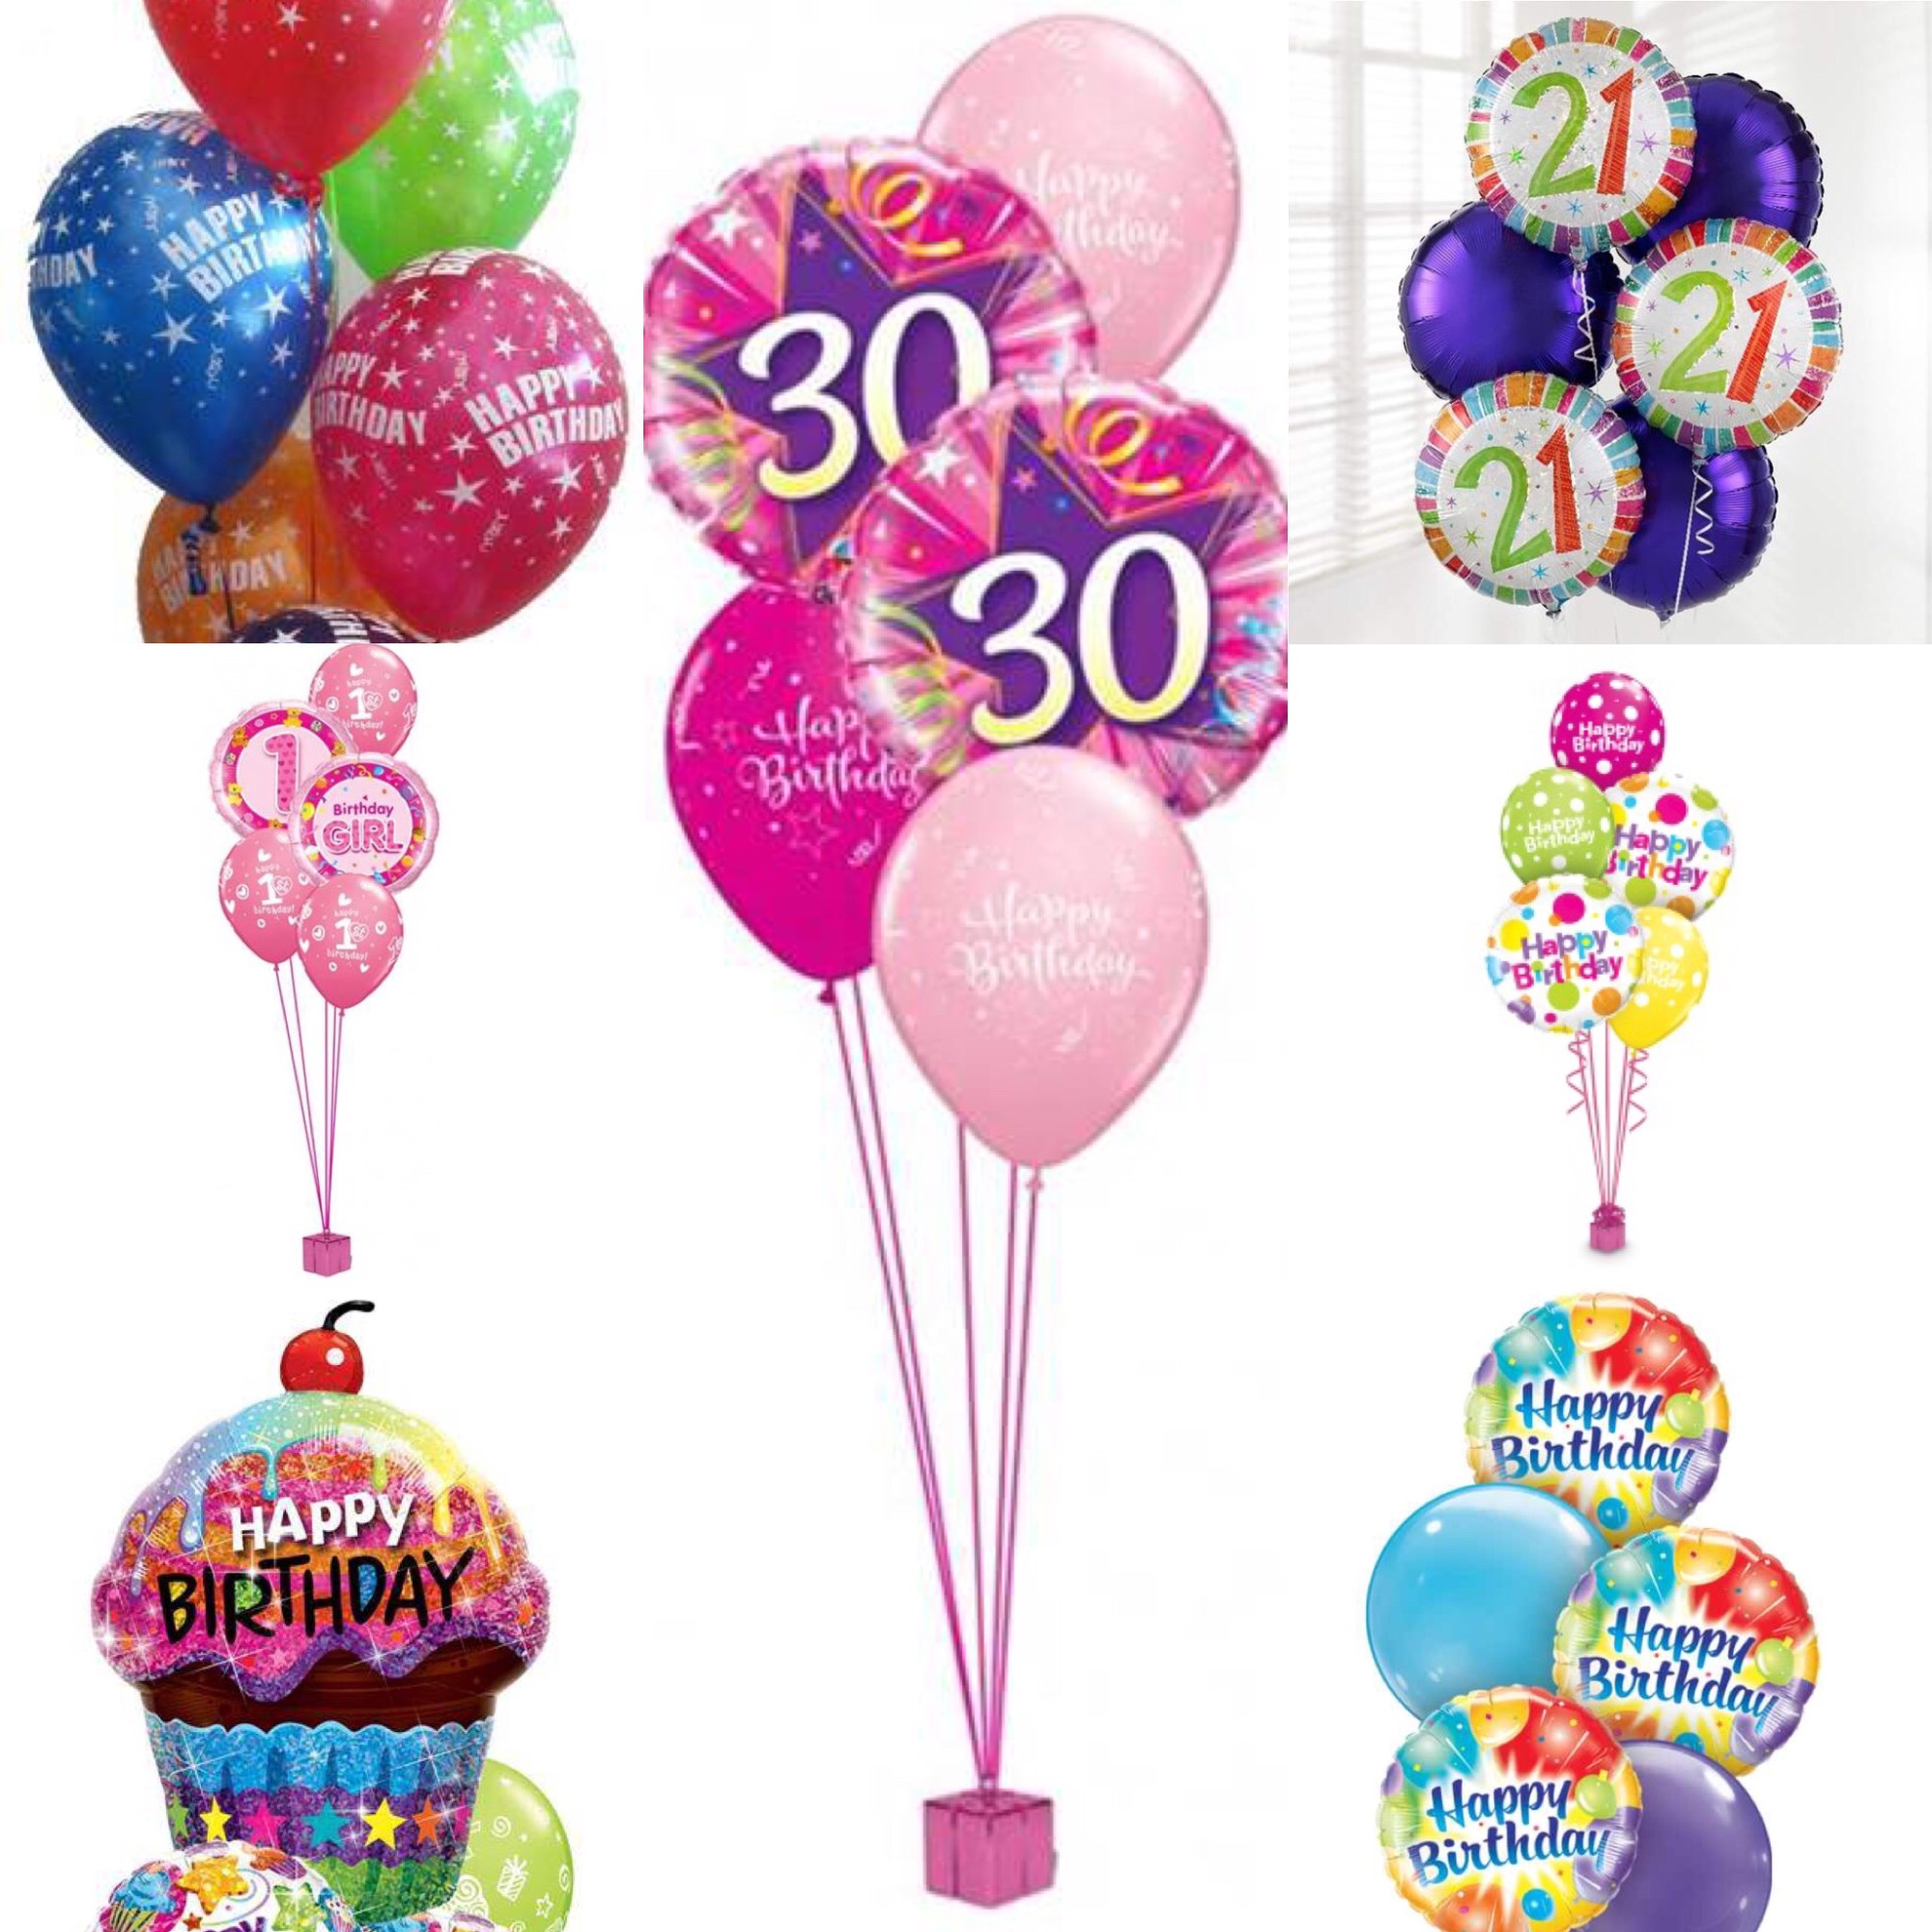 Big Balloons Confetti Balloons Popping Balloons Birthday Balloons Same Day Delivery In Thanet Wedding Packages Wedding Balloons In Kent Balloon Arch Messy Balloon Arch Baby Shower Balloons Gender Balloon Delivered Thanet Area